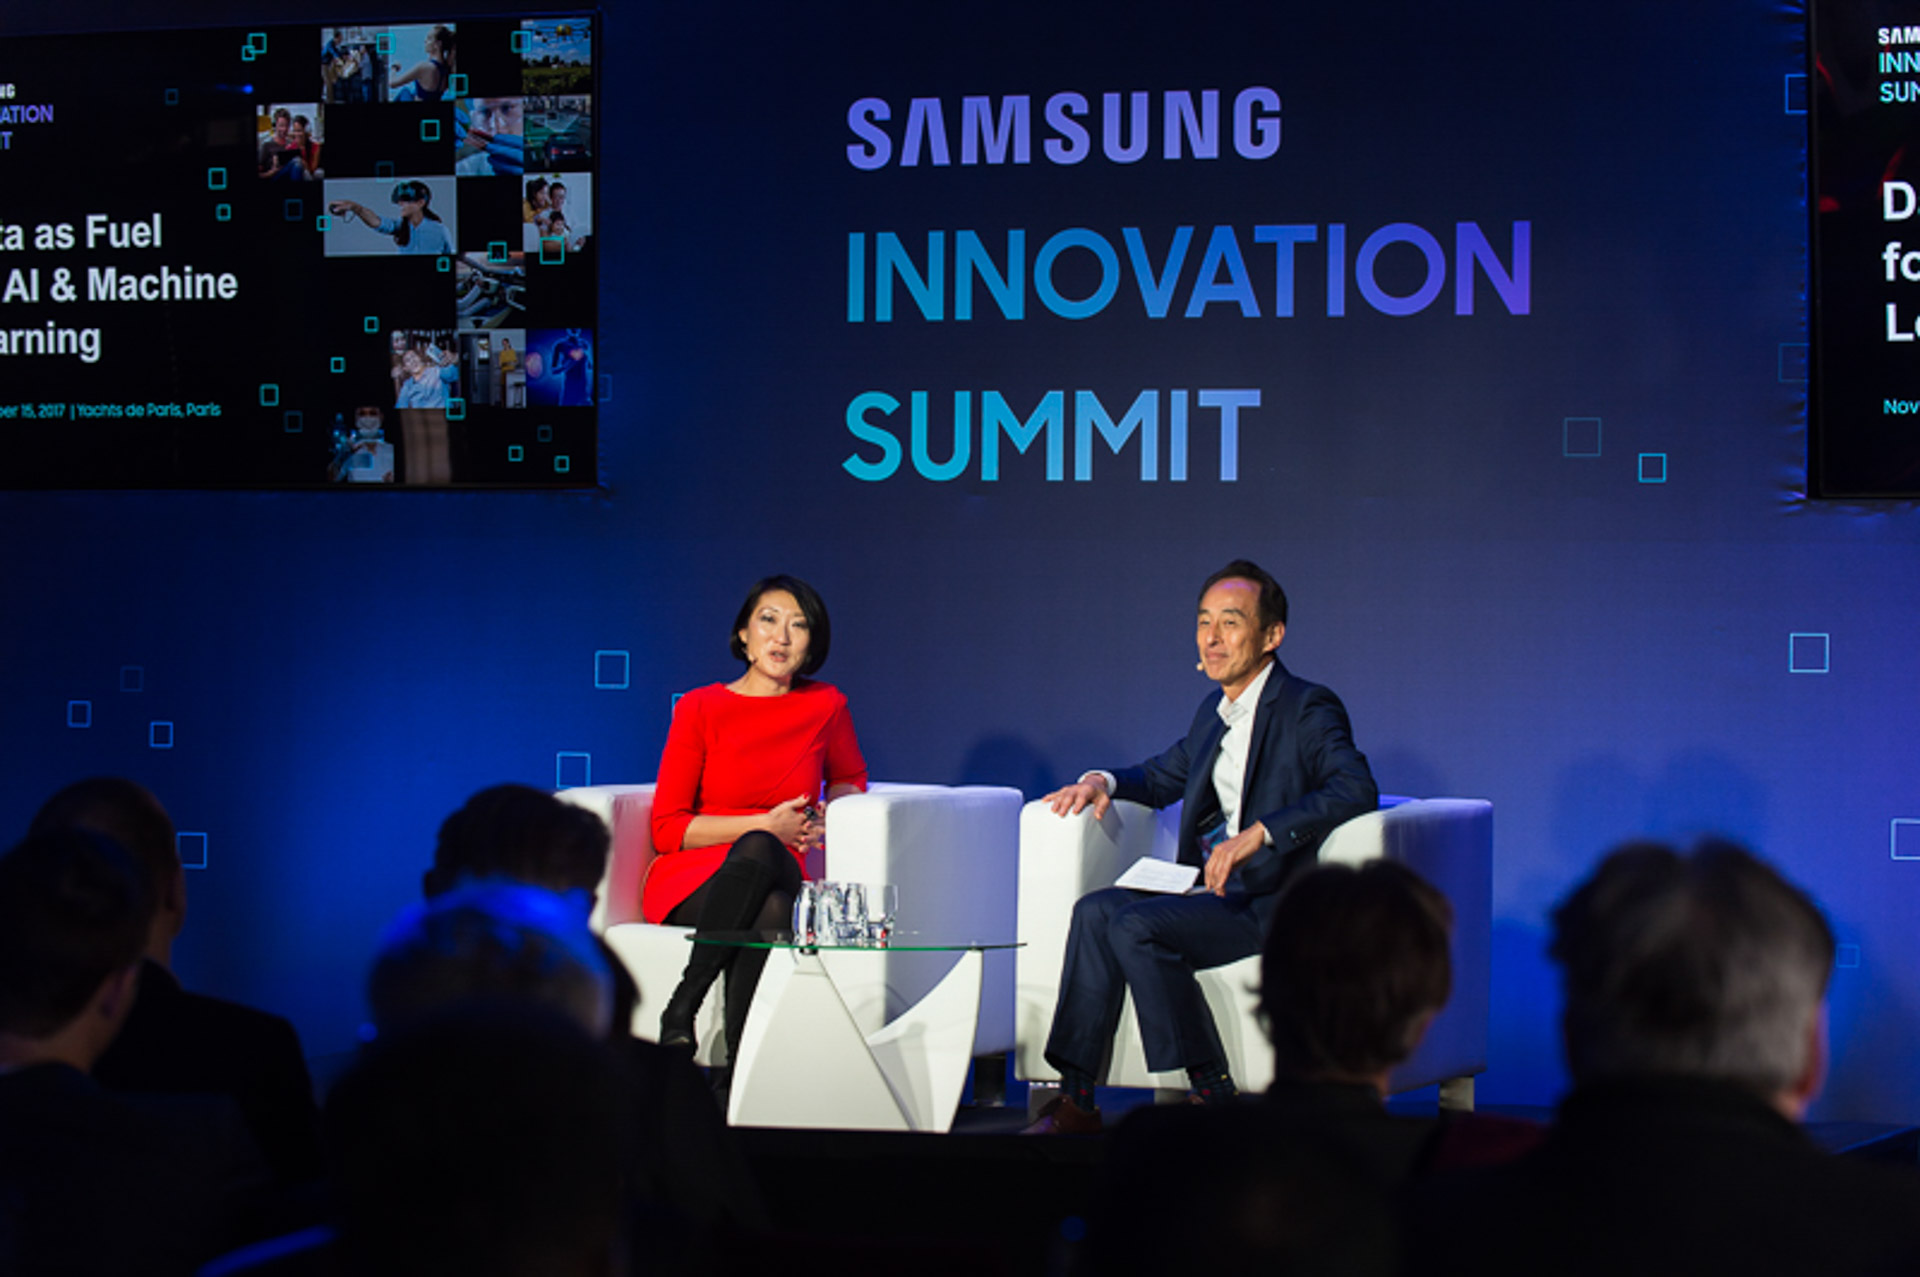 Fleur Pellerin and Young Sohn on stage during Innovation summit in Paris